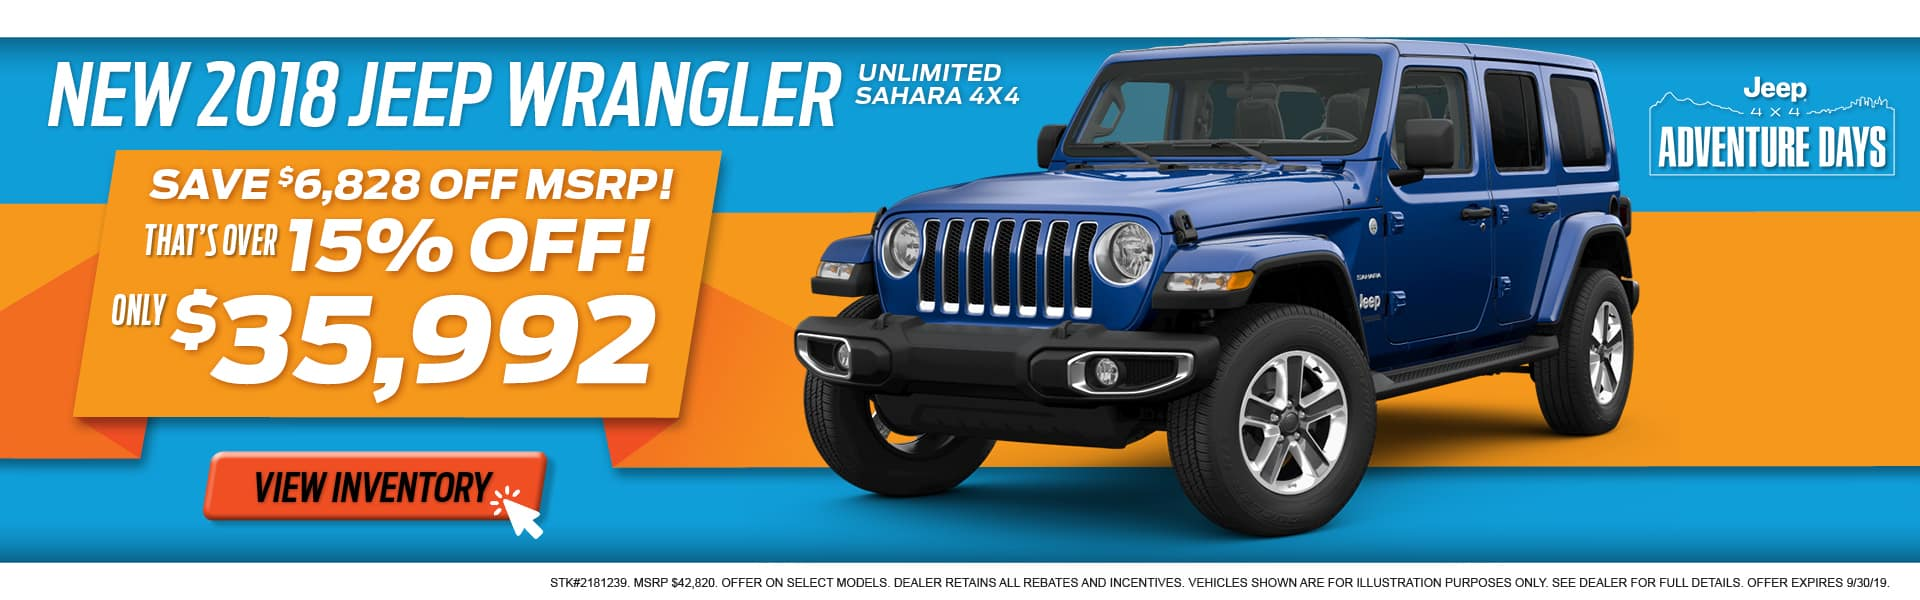 New 2018 Jeep Wrangler Unlimited for Sale near Augusta, GA